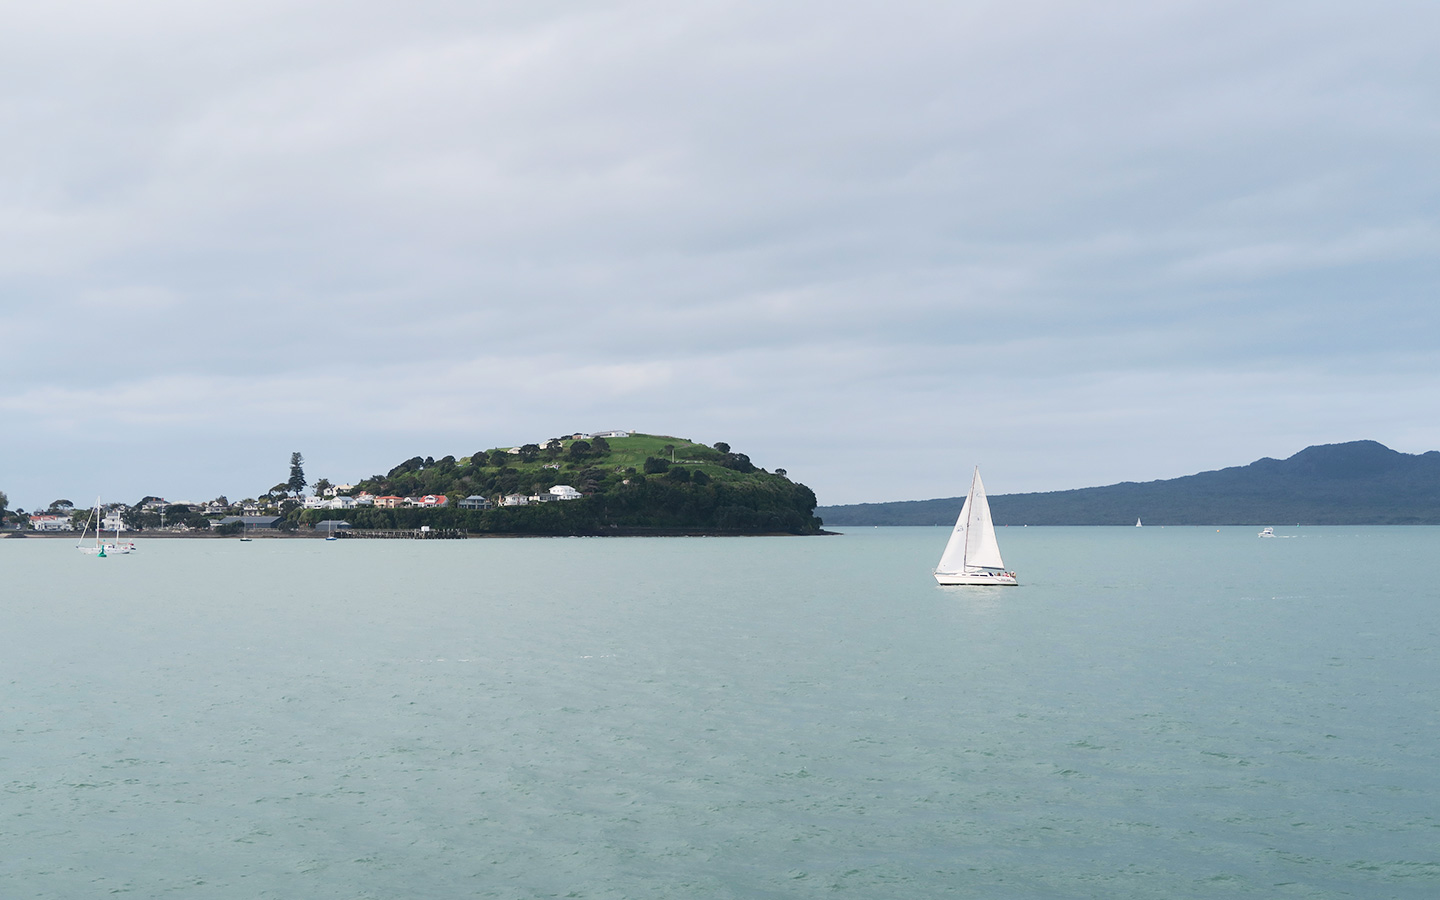 sail boat near waiheke island in auckland in new zealand